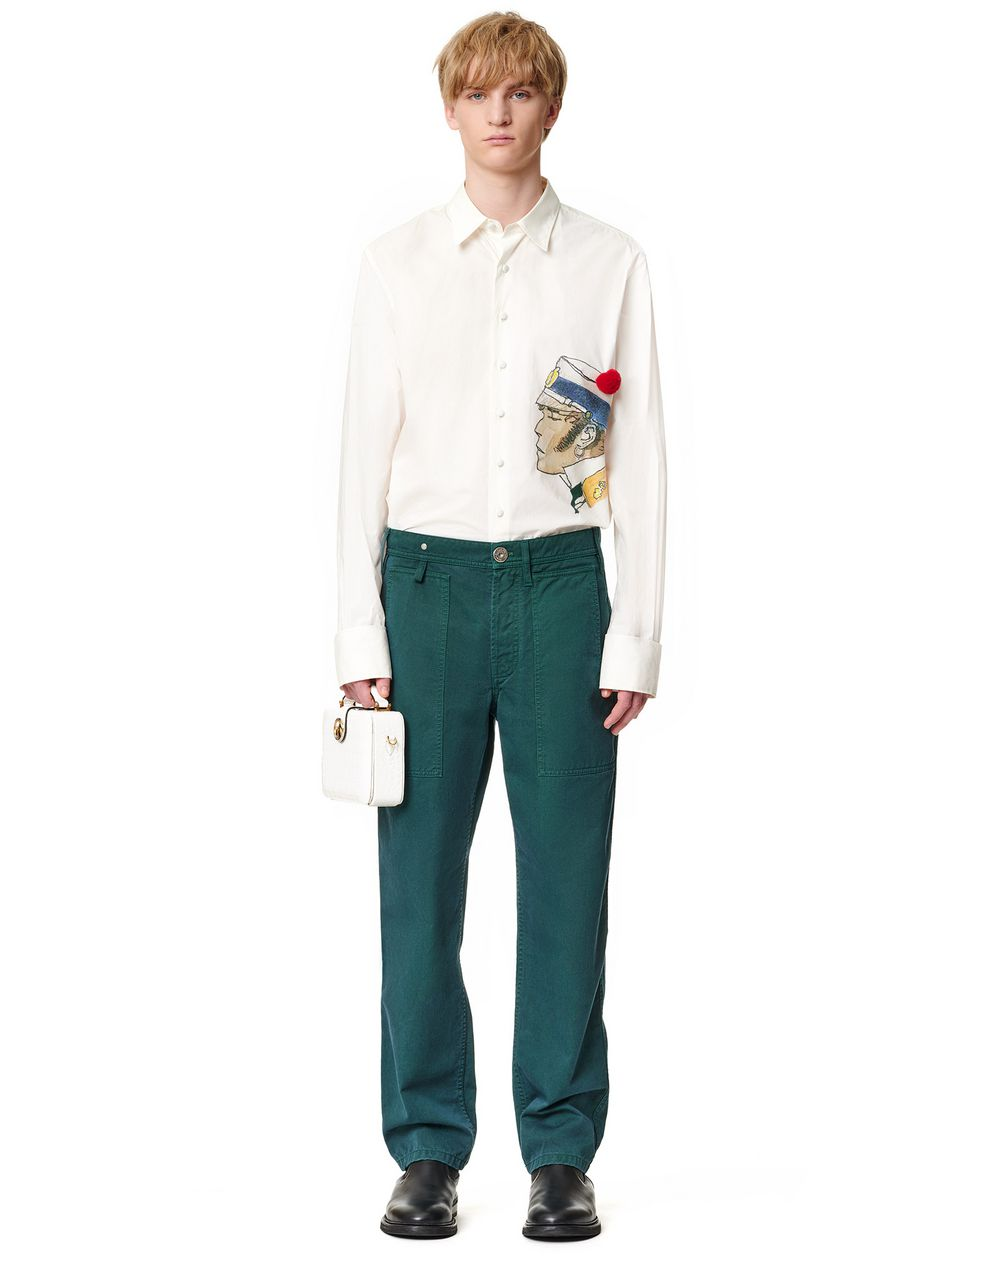 FIVE POCKETS PANTS - Lanvin